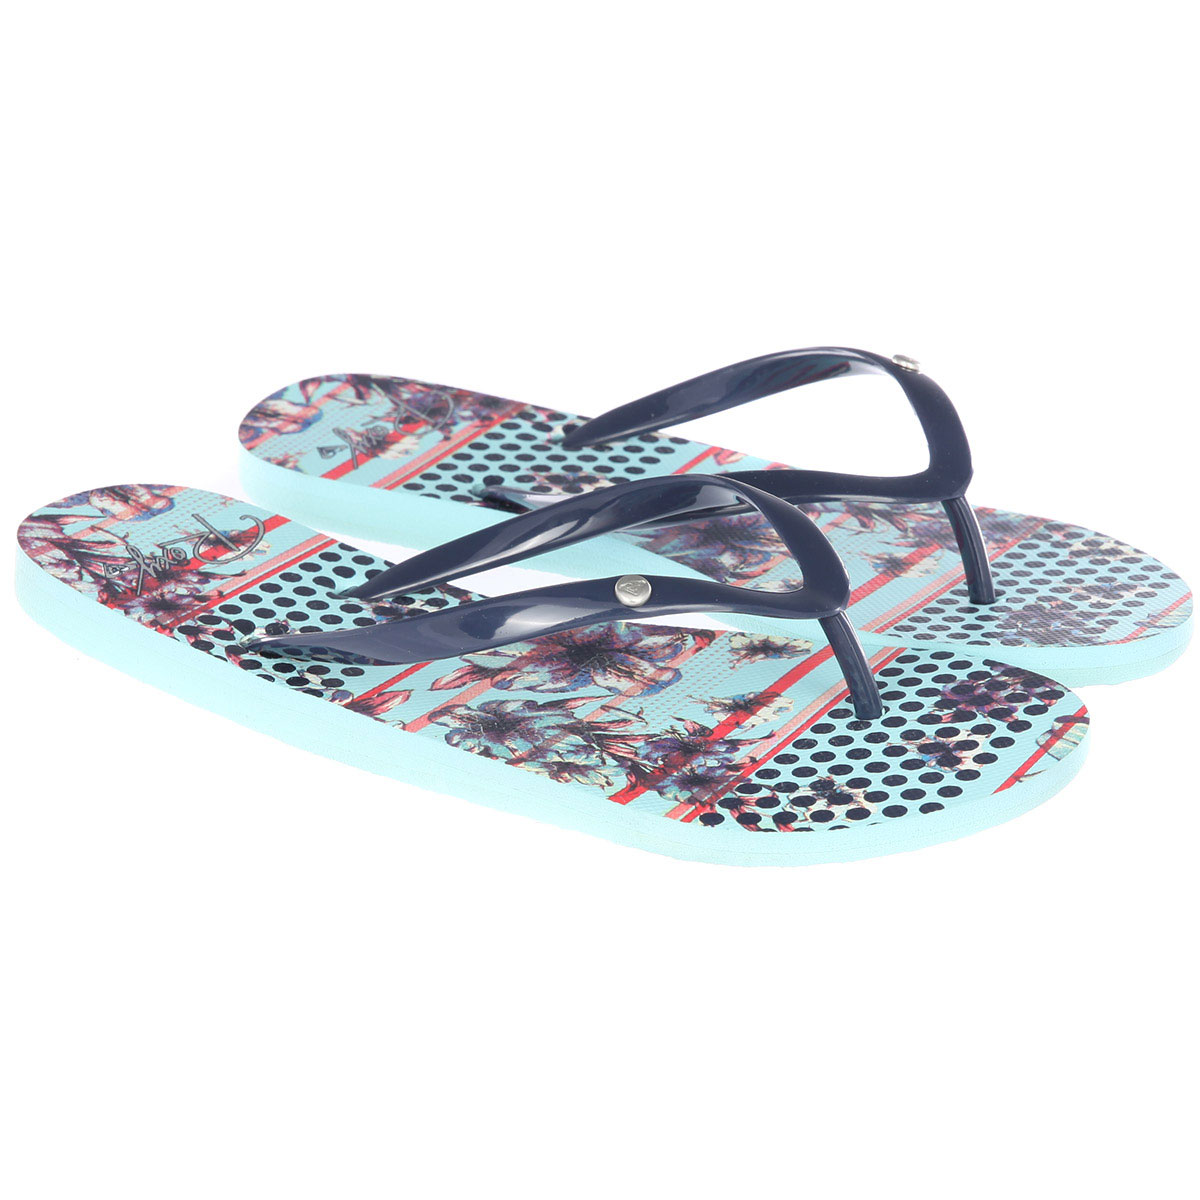 Сланцы женские ROXY Portofino light blue. Фото N3